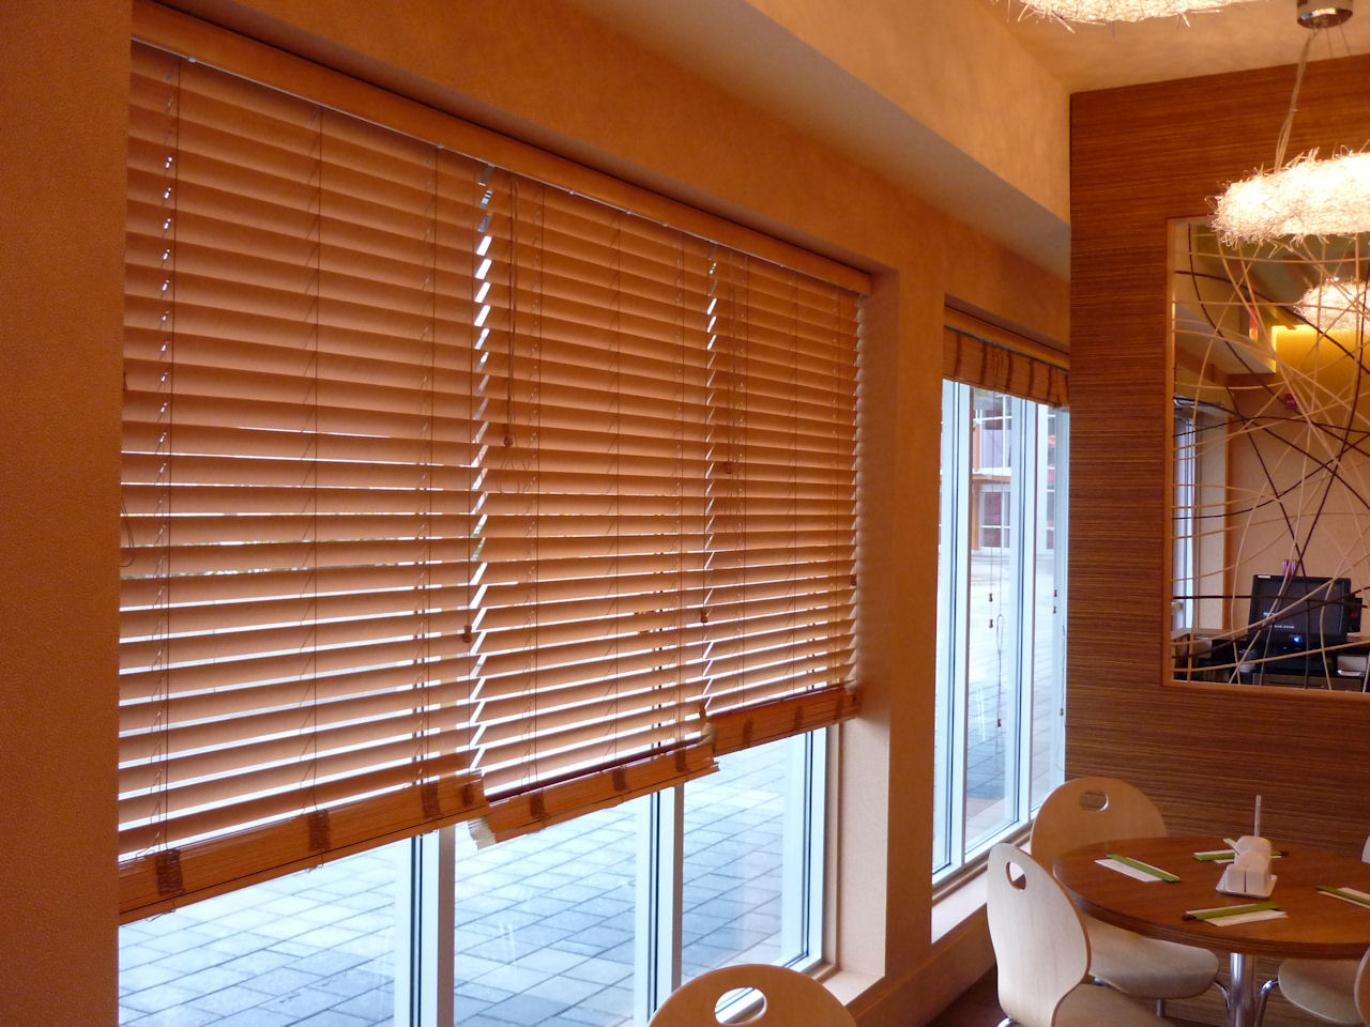 Wooden Blinds Manufacturer In Chennai Tamil Nadu India By